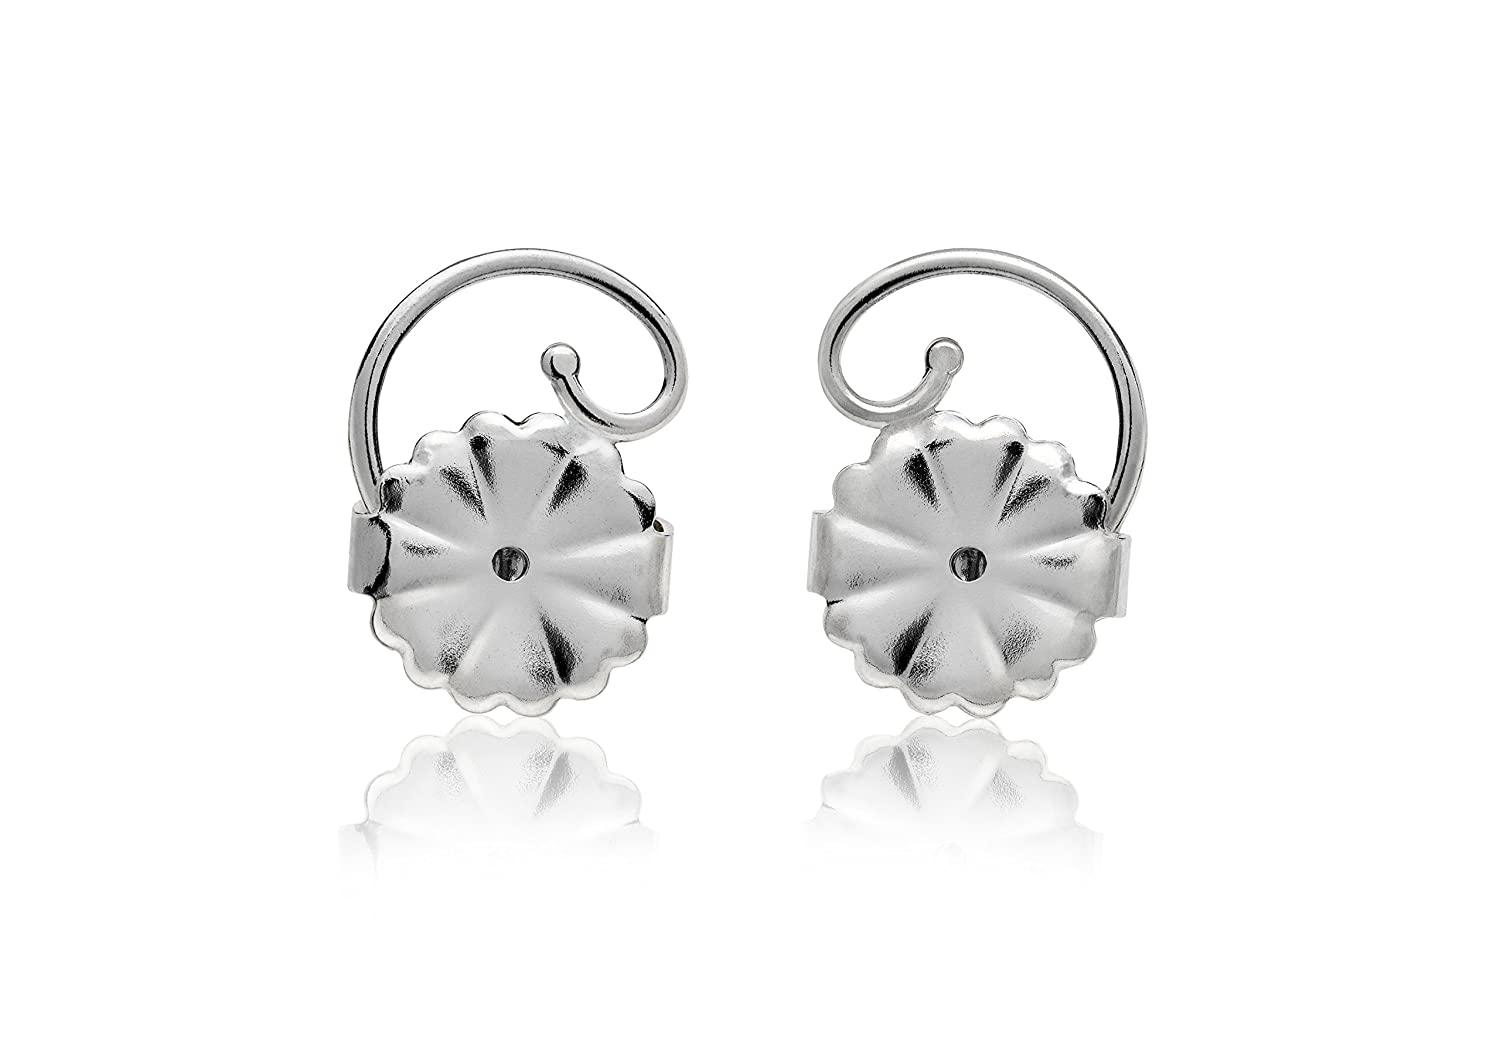 d079c50e0 Amazon.com: Levears Earring Lifts 14kt White Gold: Beauty